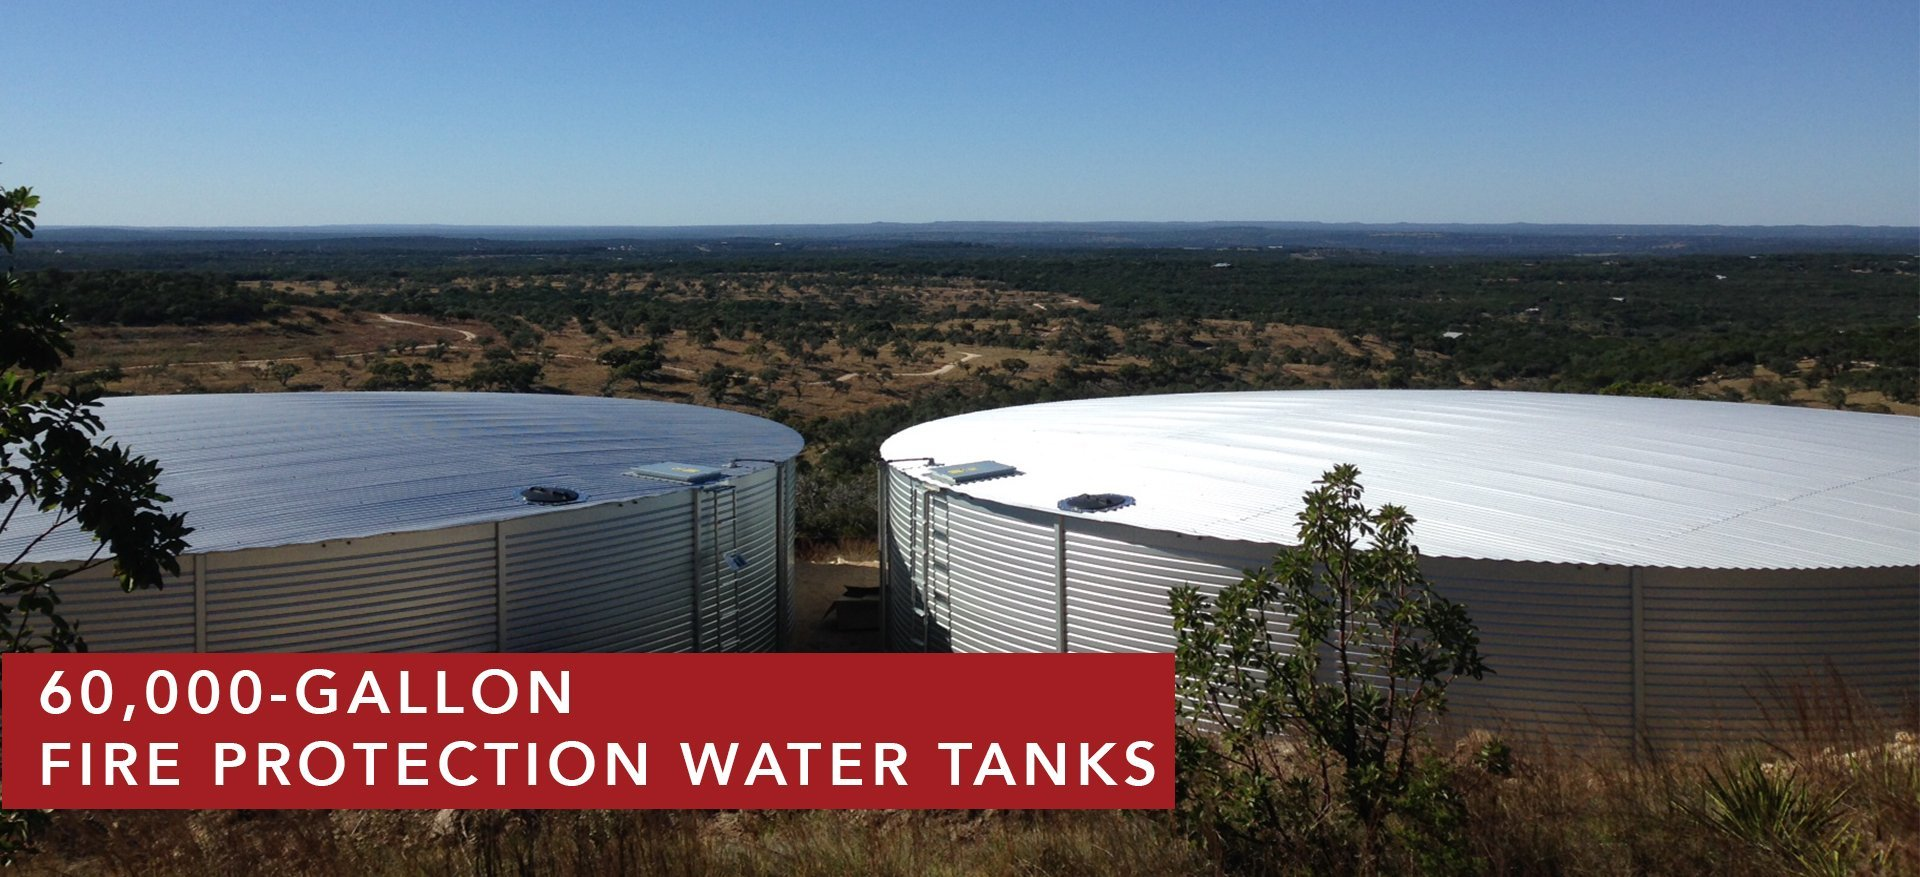 60,000-Gallon Water Storage Tanks for Fire Protection